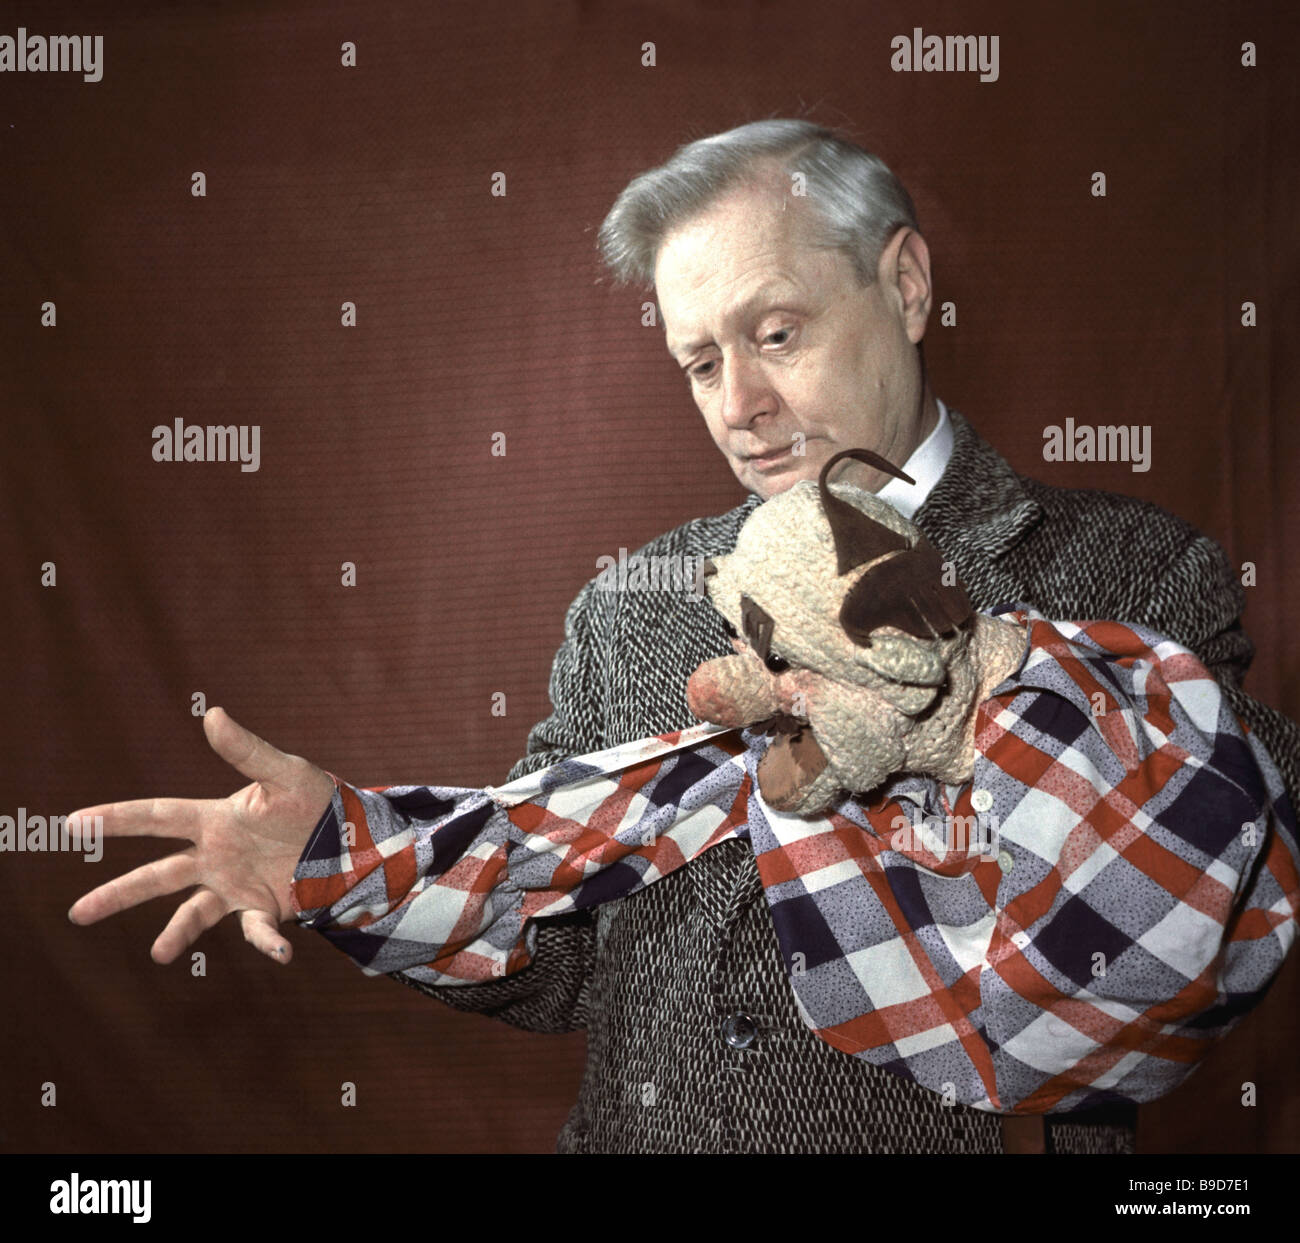 Sergei Obraztsov State Puppet Theatre manager and artistic director People s Actor of the USSR - Stock Image